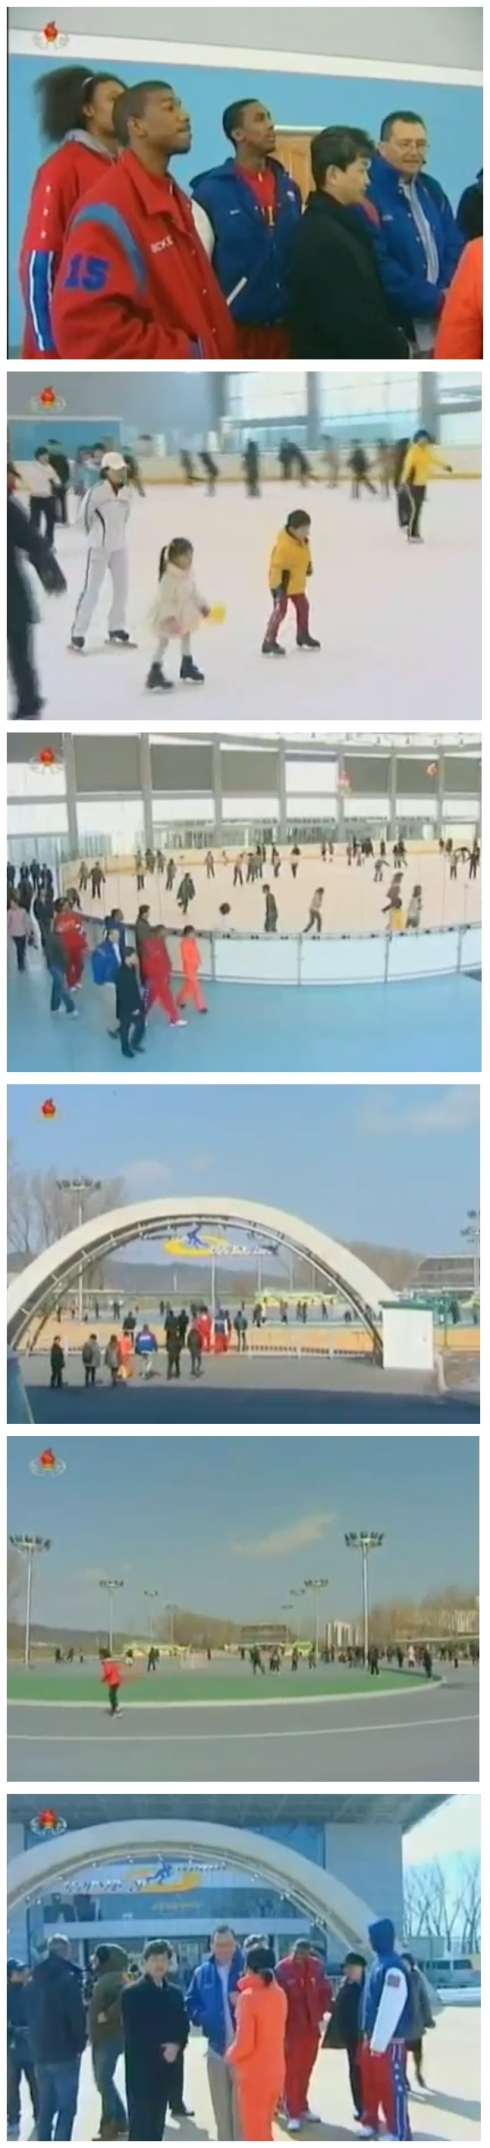 Members of the Harlem Globetrotters tour the Indoor Ice Rink and Pyongyang Skate Park on 1 March 2013 (Photos: KCTV screengrabs)